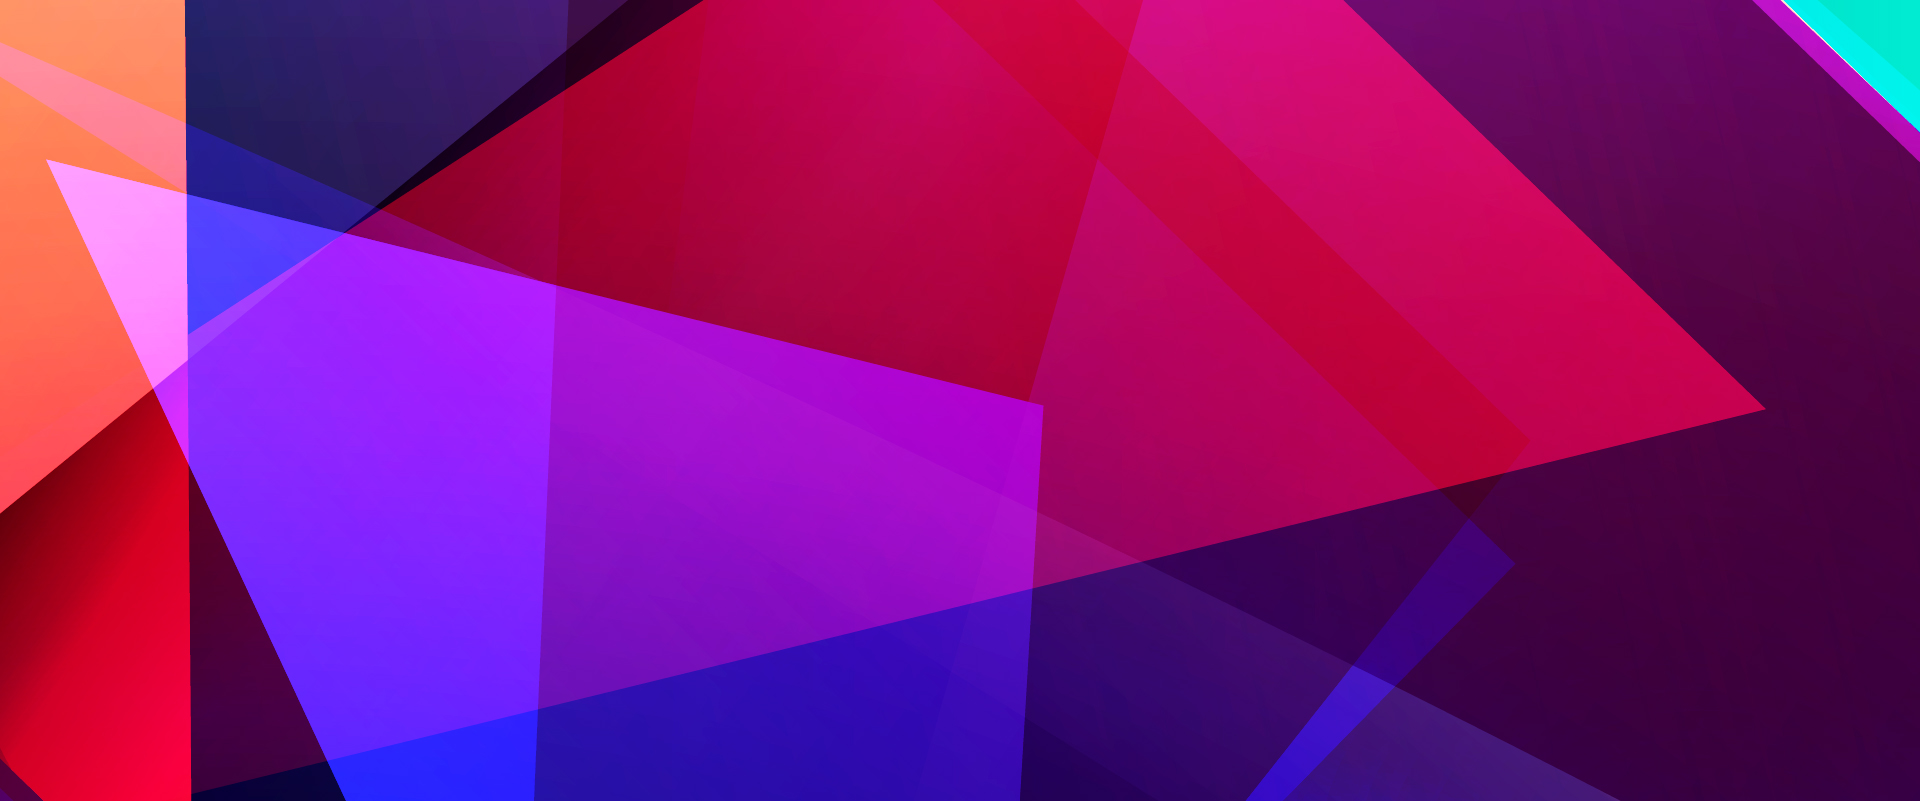 geometric abstract background colors  poster  banner  flat